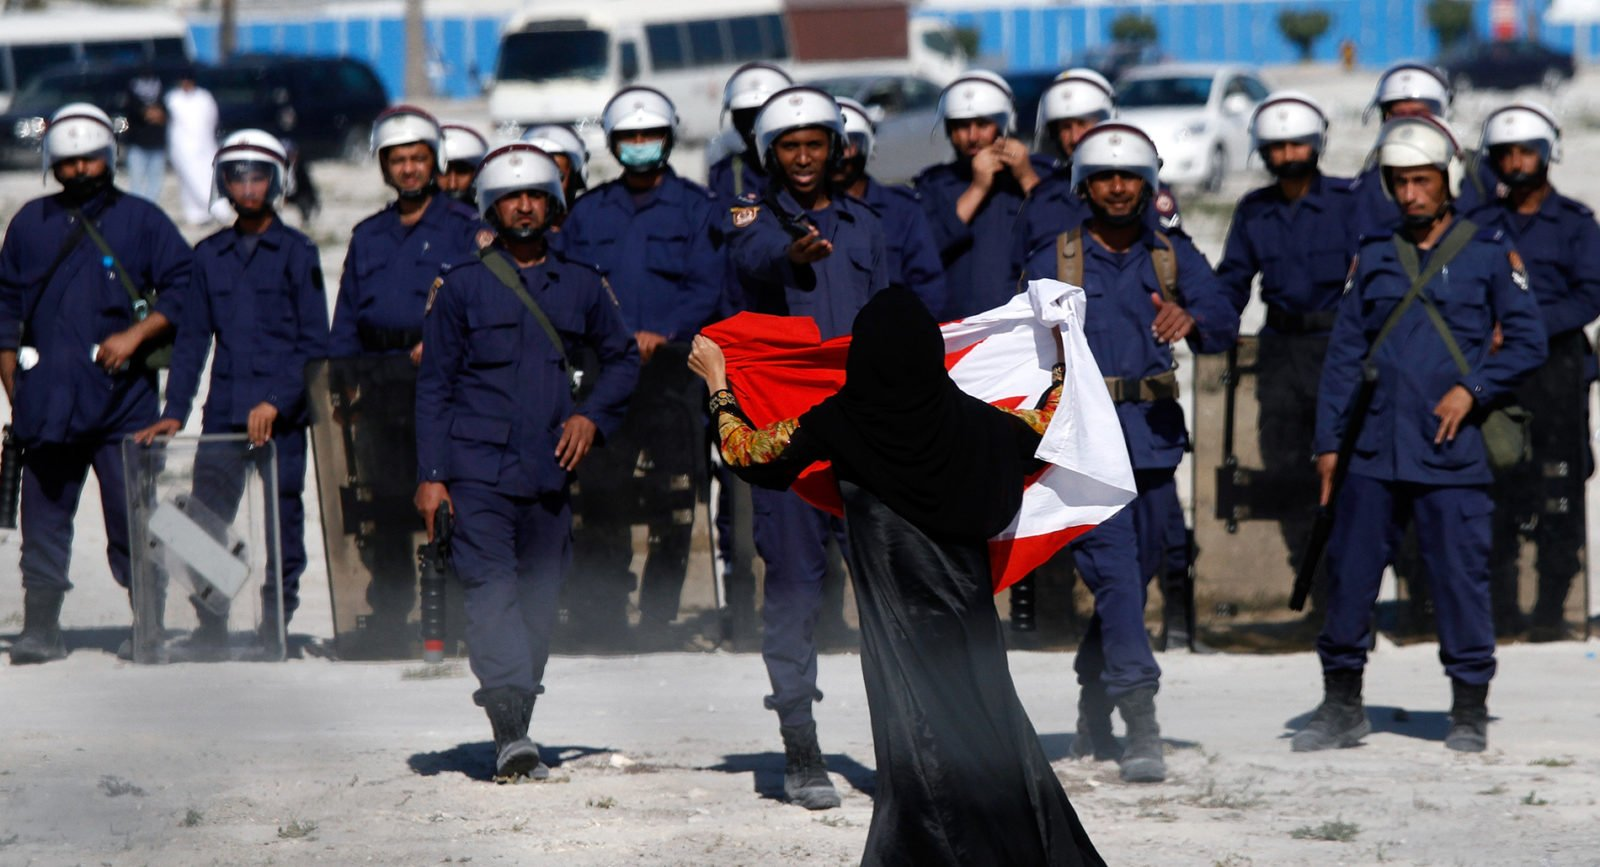 An anti-government protester holds a flag in front of a line of police in Bahrain.